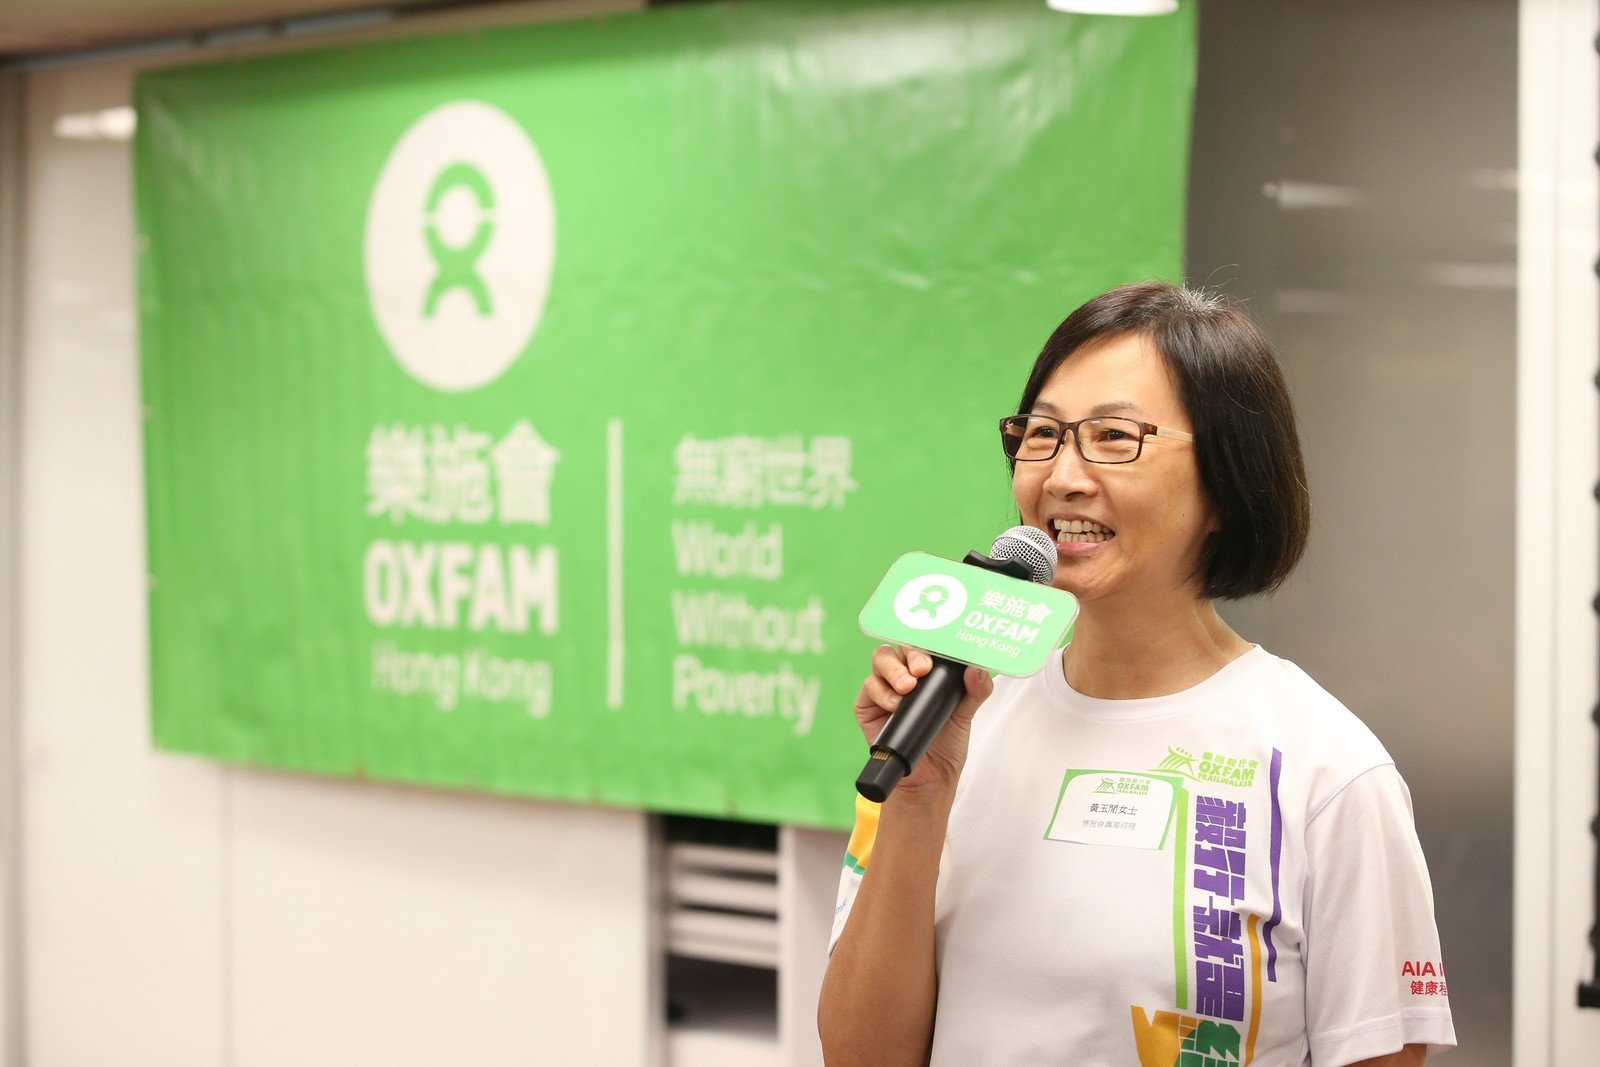 Brenda Wong, Fundraising Manager (Events) of Oxfam Hong Kong, briefed walkers and their support teams on event details and safety measures. She also introduced the new environmental measure that will be launched this year.